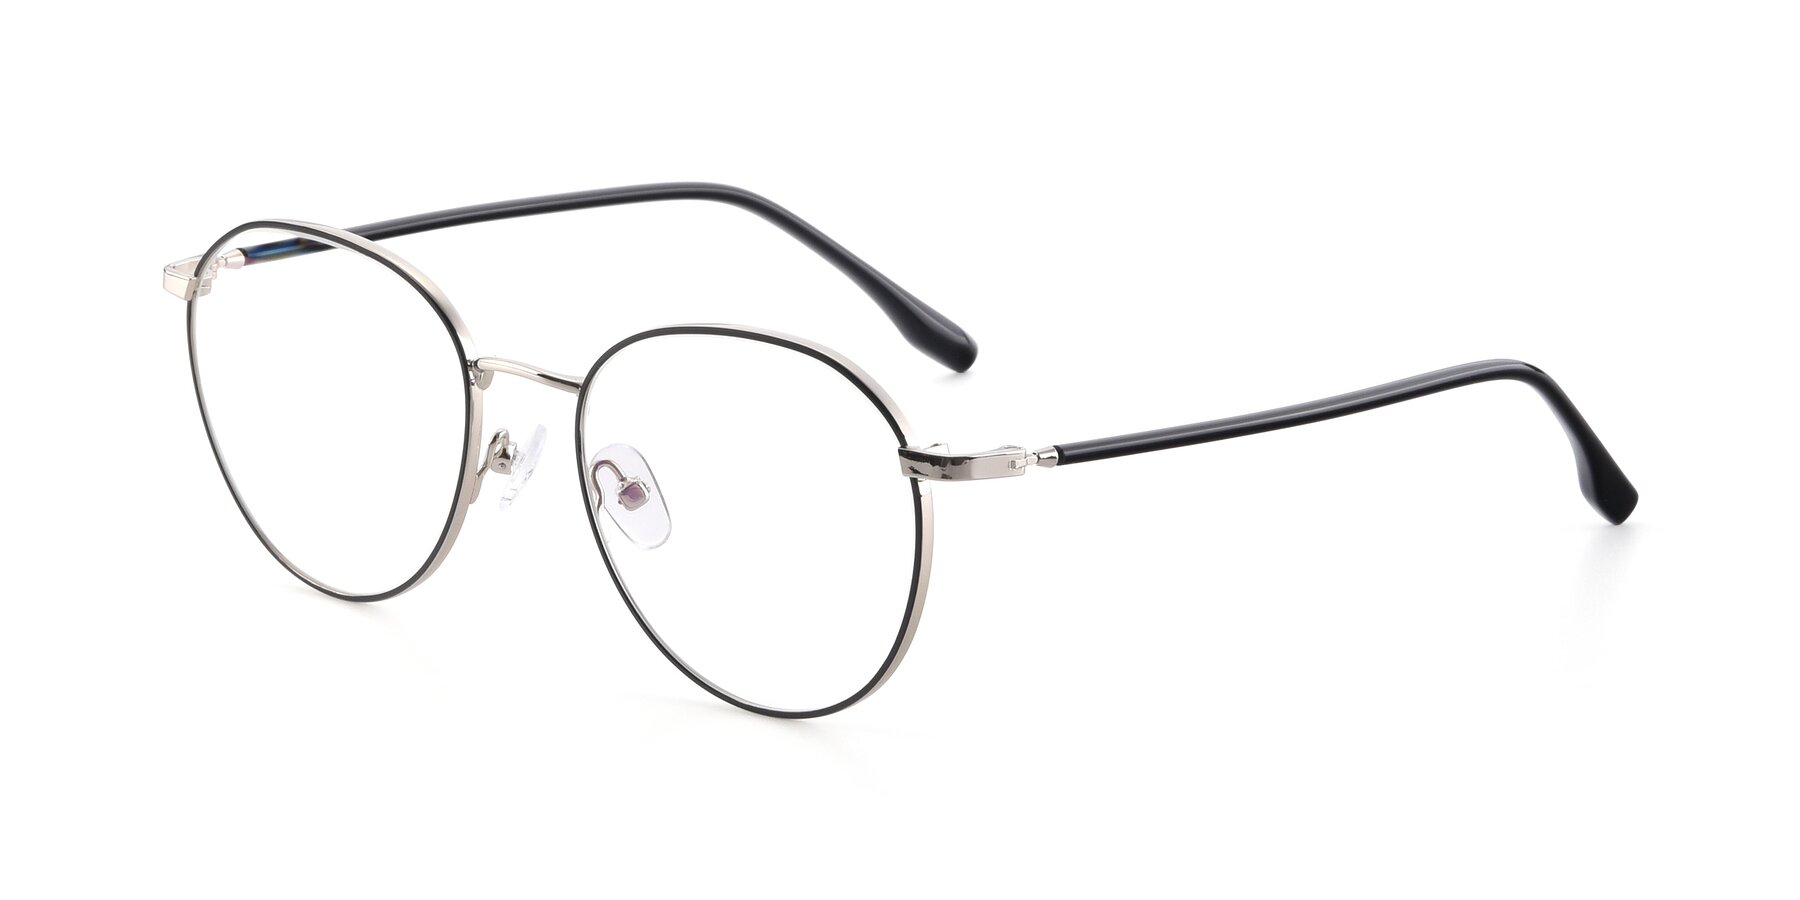 Angle of 9553 in Black-Silver with Clear Blue Light Blocking Lenses